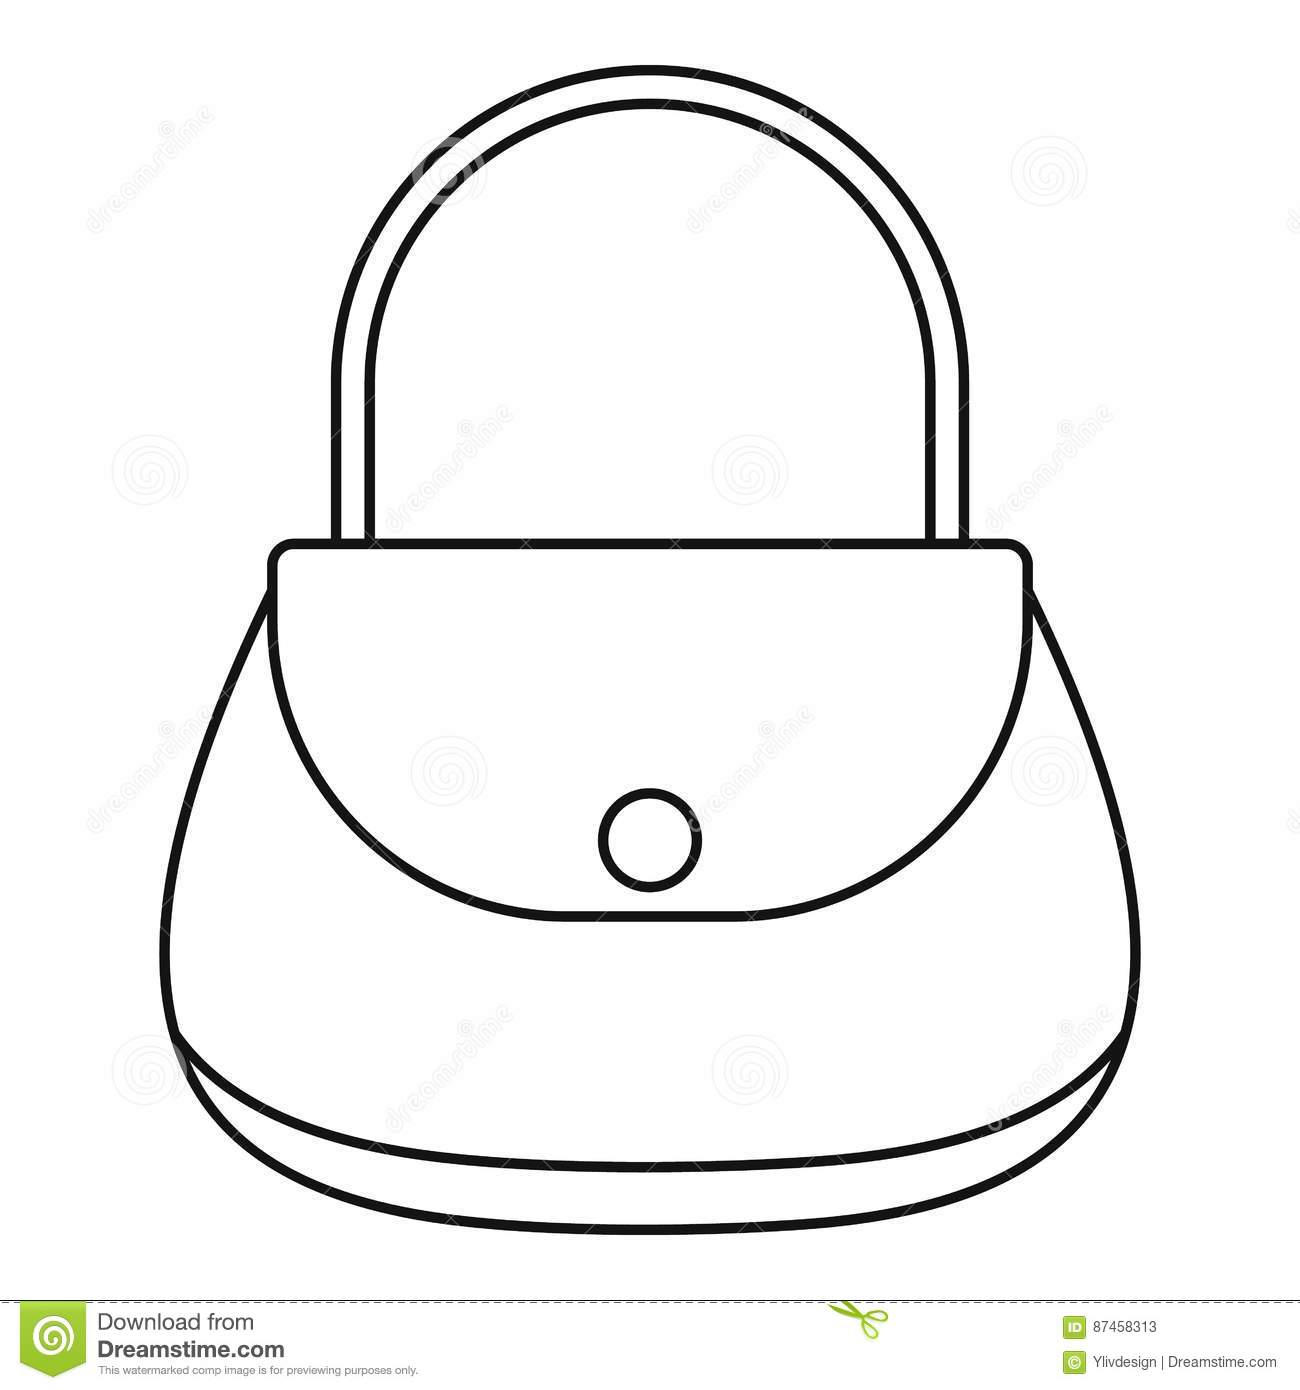 Outline Shopping Bag Clip Art , Free Transparent Clipart - ClipartKey